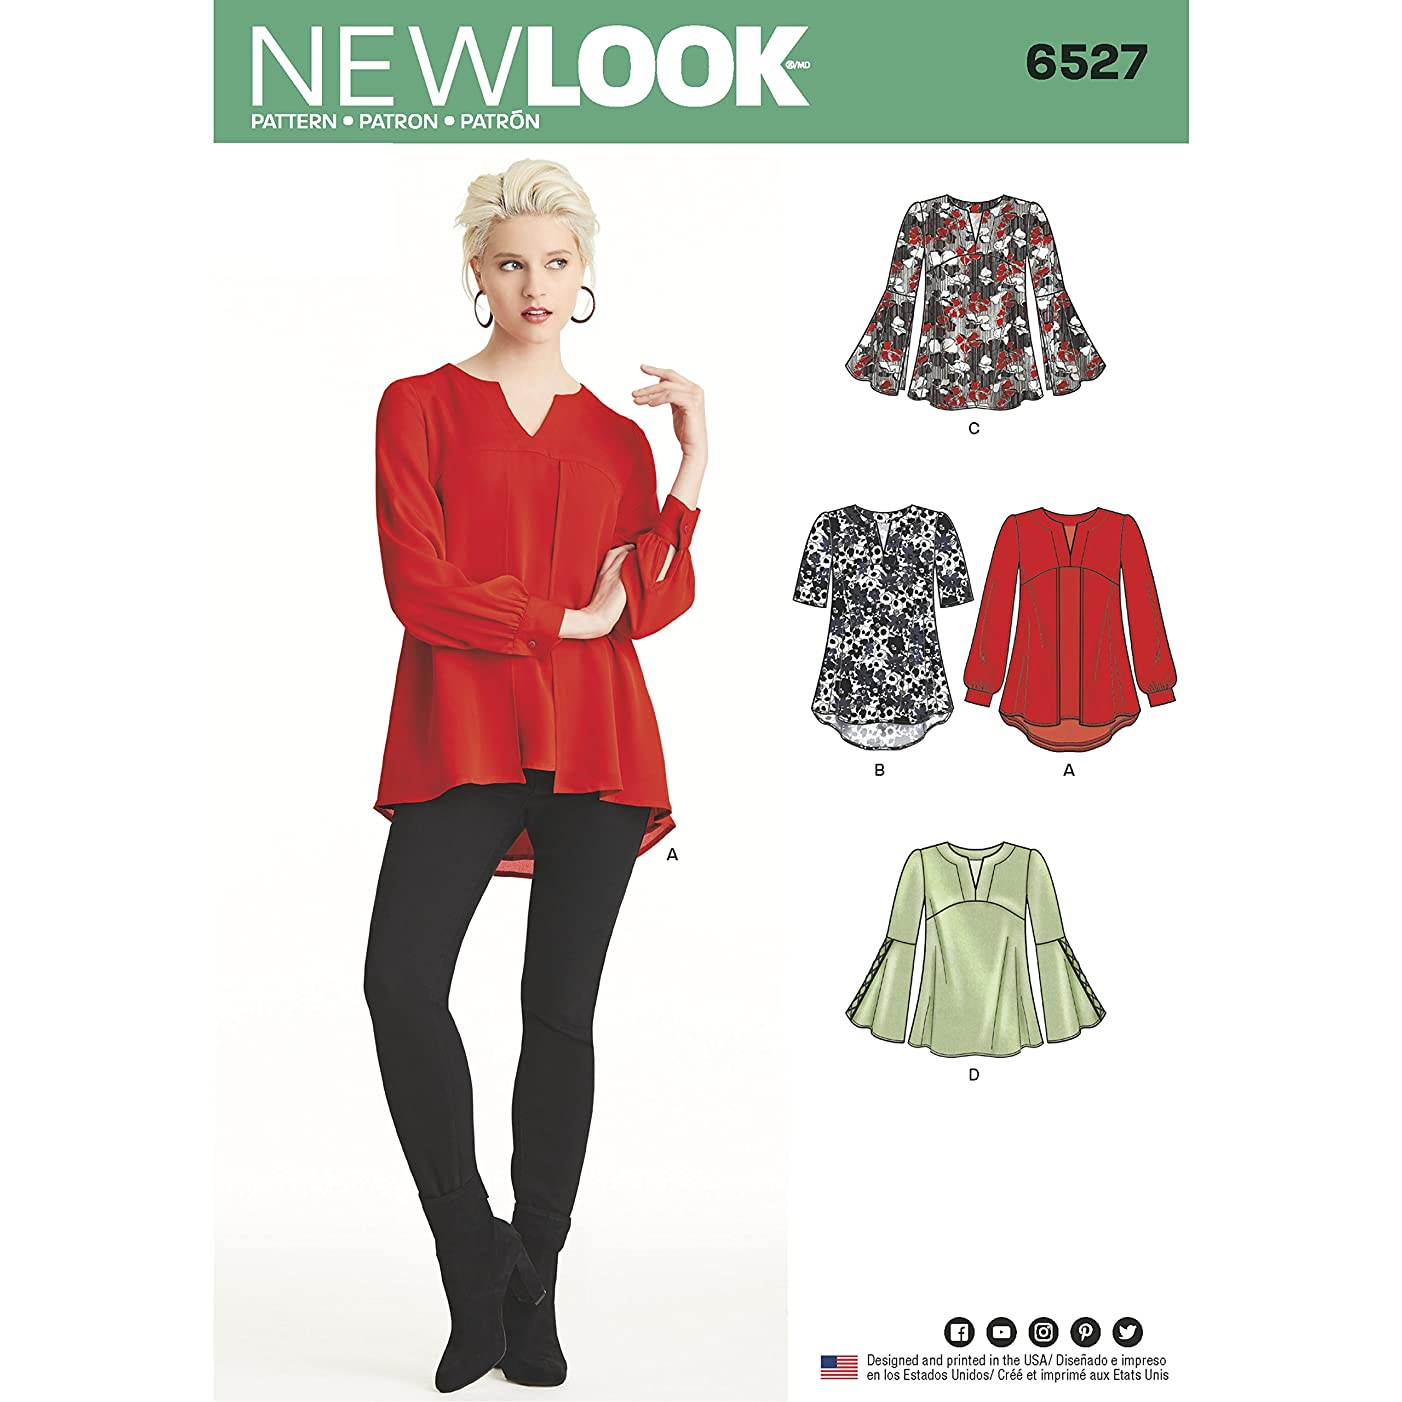 NEW LOOK Sewing Pattern 6527 - Misses' Tunic in Two Lengths, A(8-10-12-14-16-18-20)